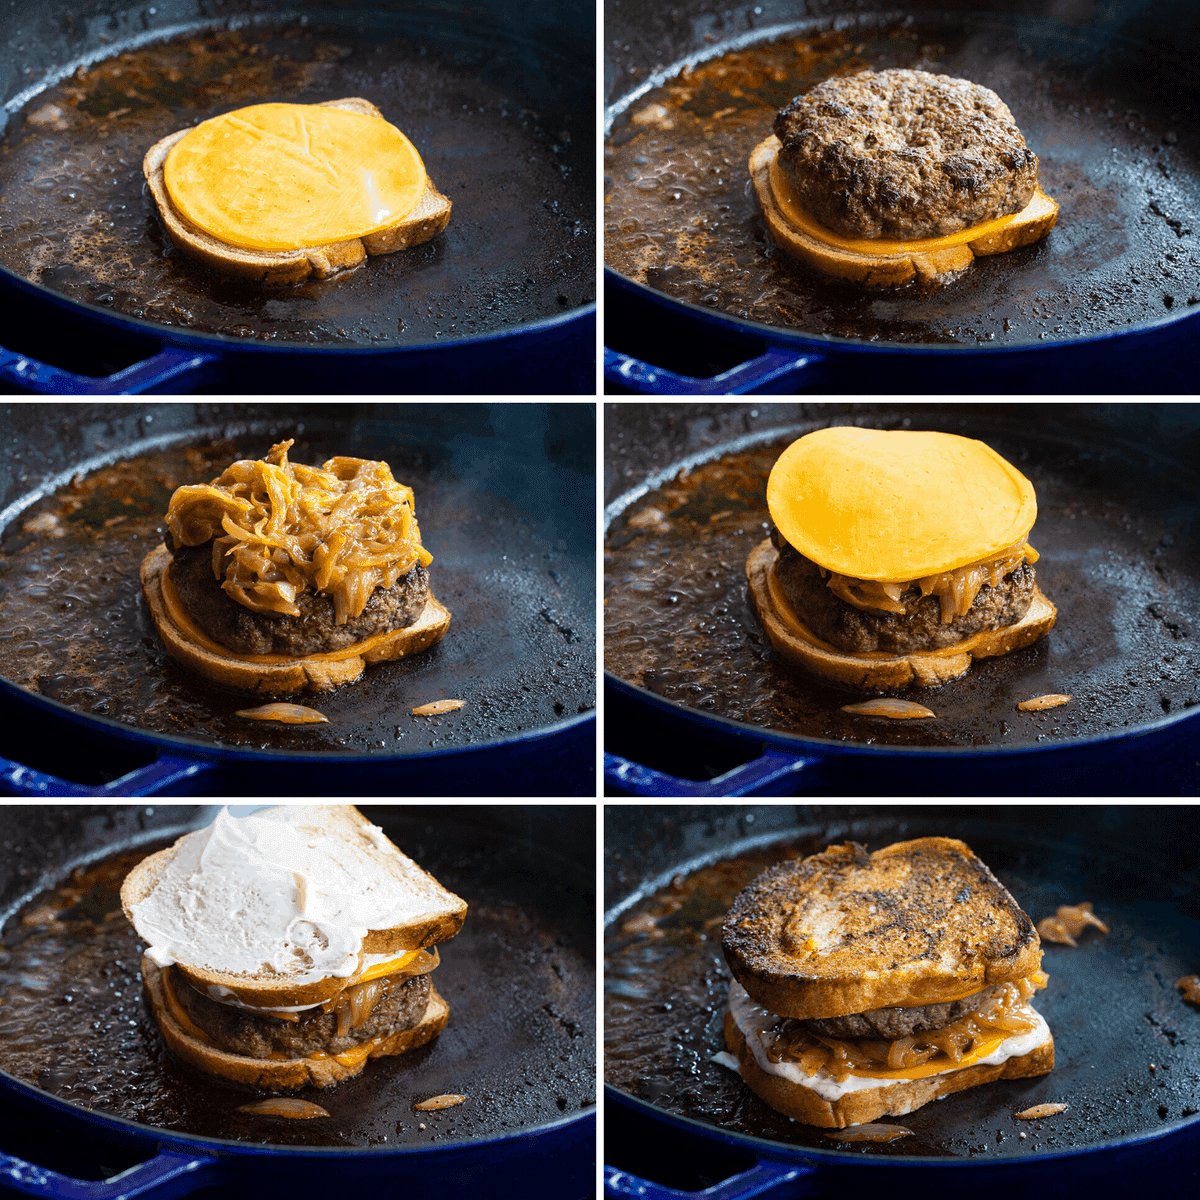 Process Images of the Layers Being added to Patty Melt Sandwich